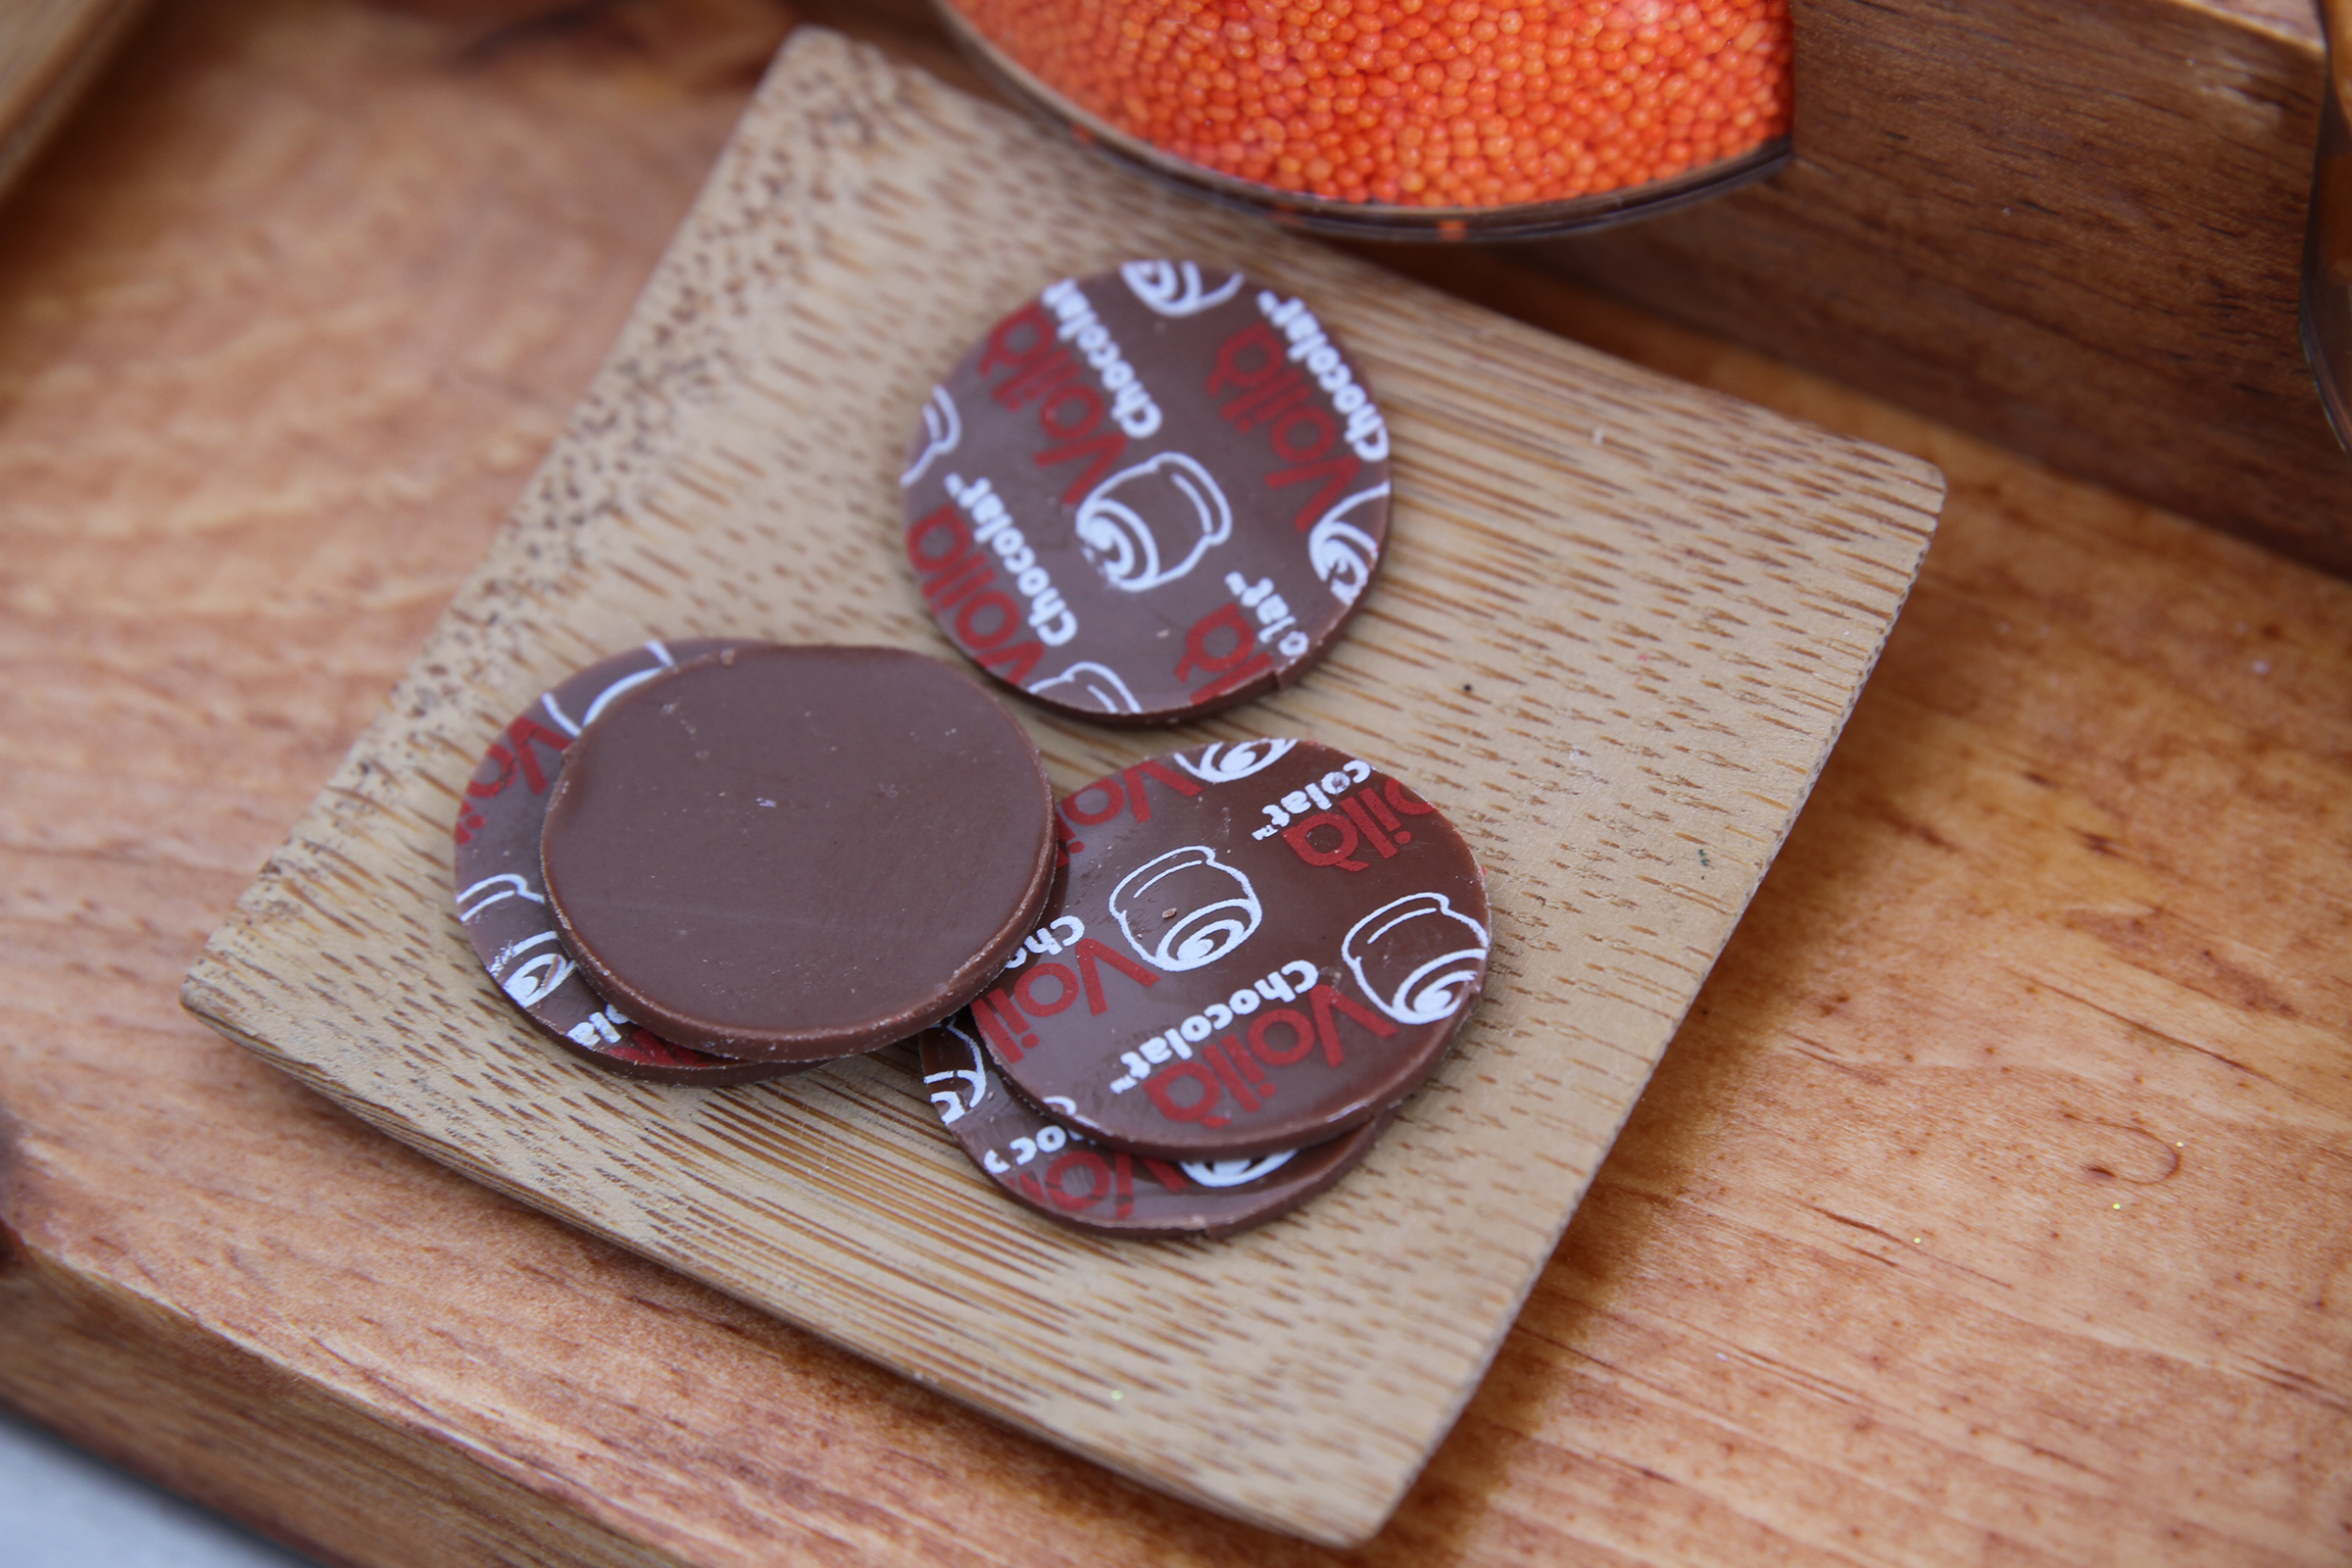 """Plaquettes (literally, """"small plaques"""" in French) are small circles of chocolate with your logo or design, which can be used to top round chocolates like truffles."""